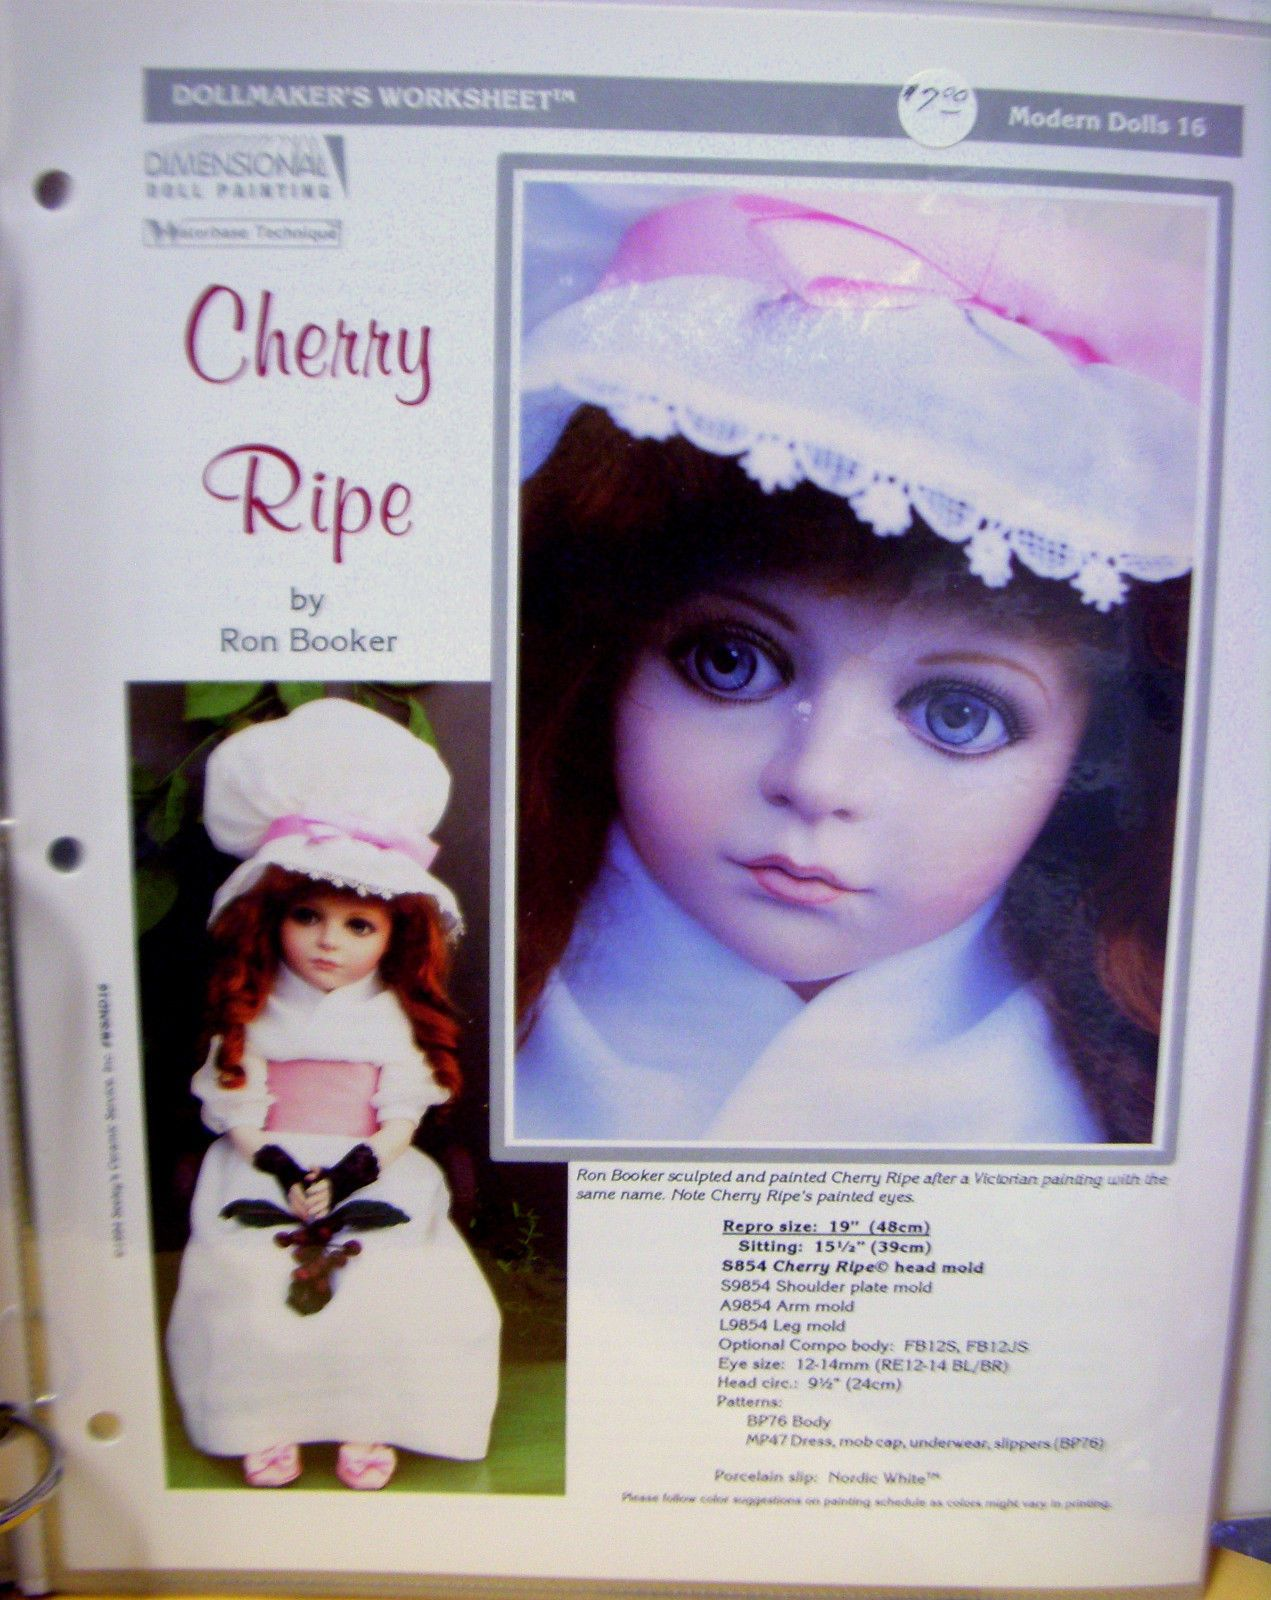 Seeley S Dollmaker S Worksheet Cherry Ripe Modern Dolls